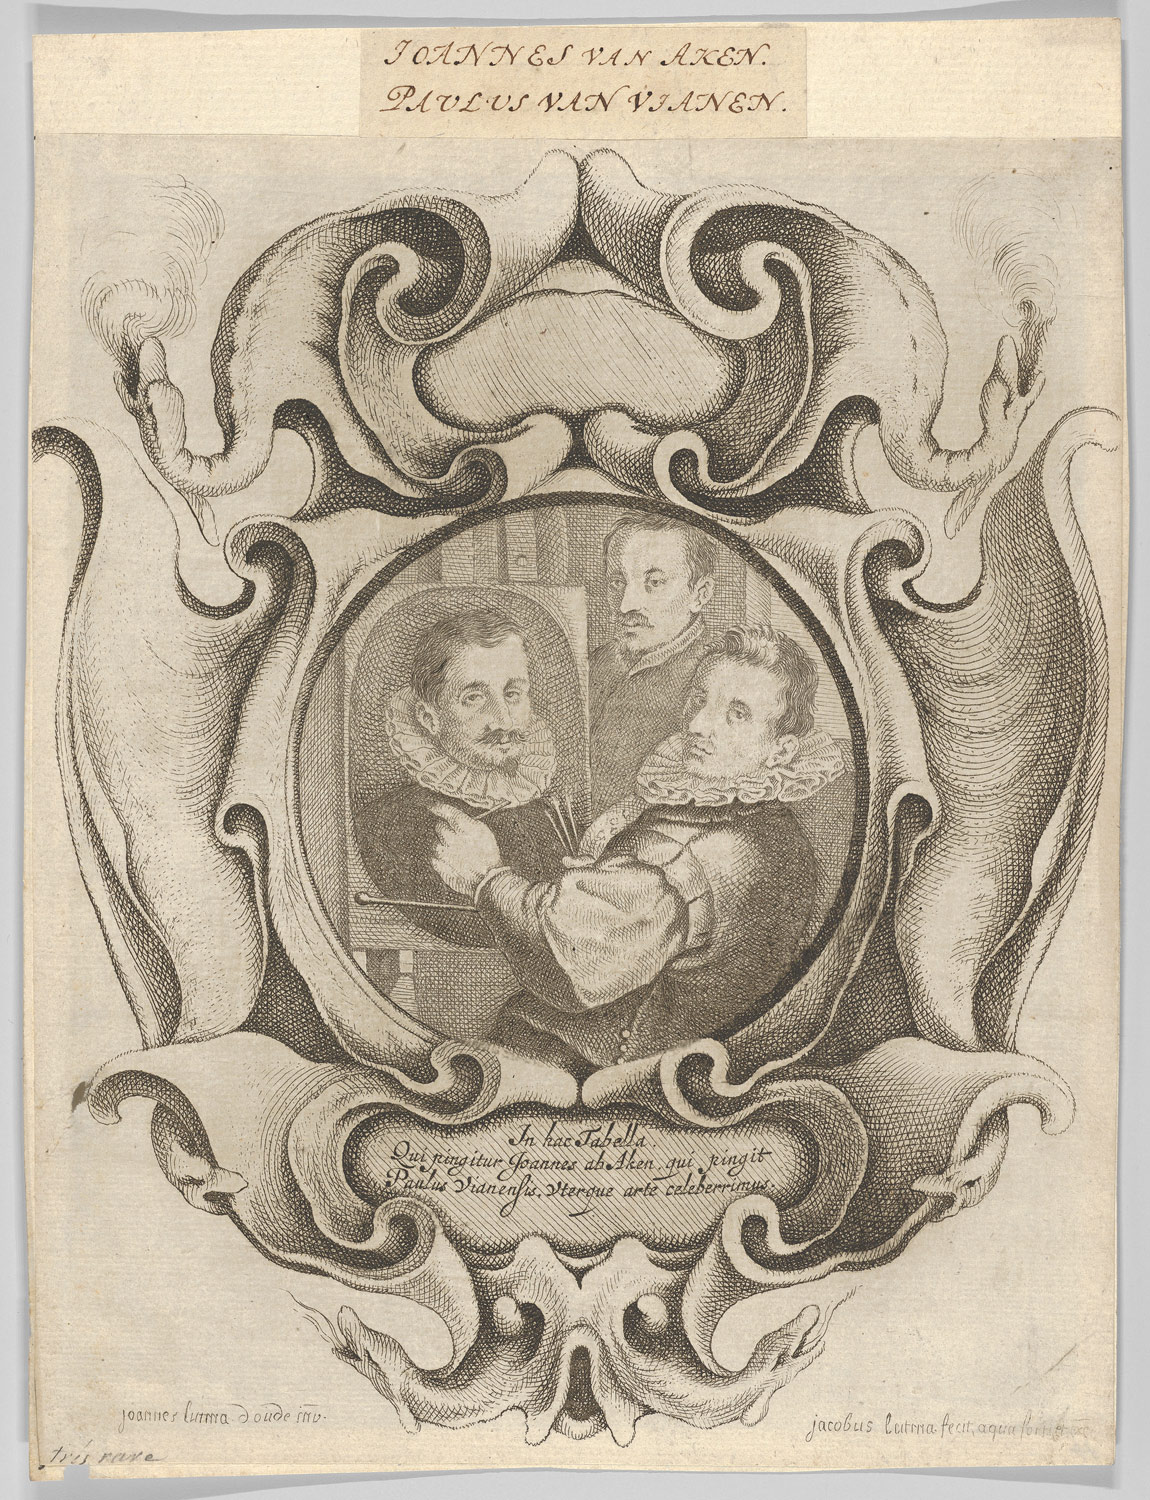 Auricular Cartouche with the Painter Hans von Aachen, the Goldsmith Paulus van Vianen, and the Sculptor Adriaen de Vries